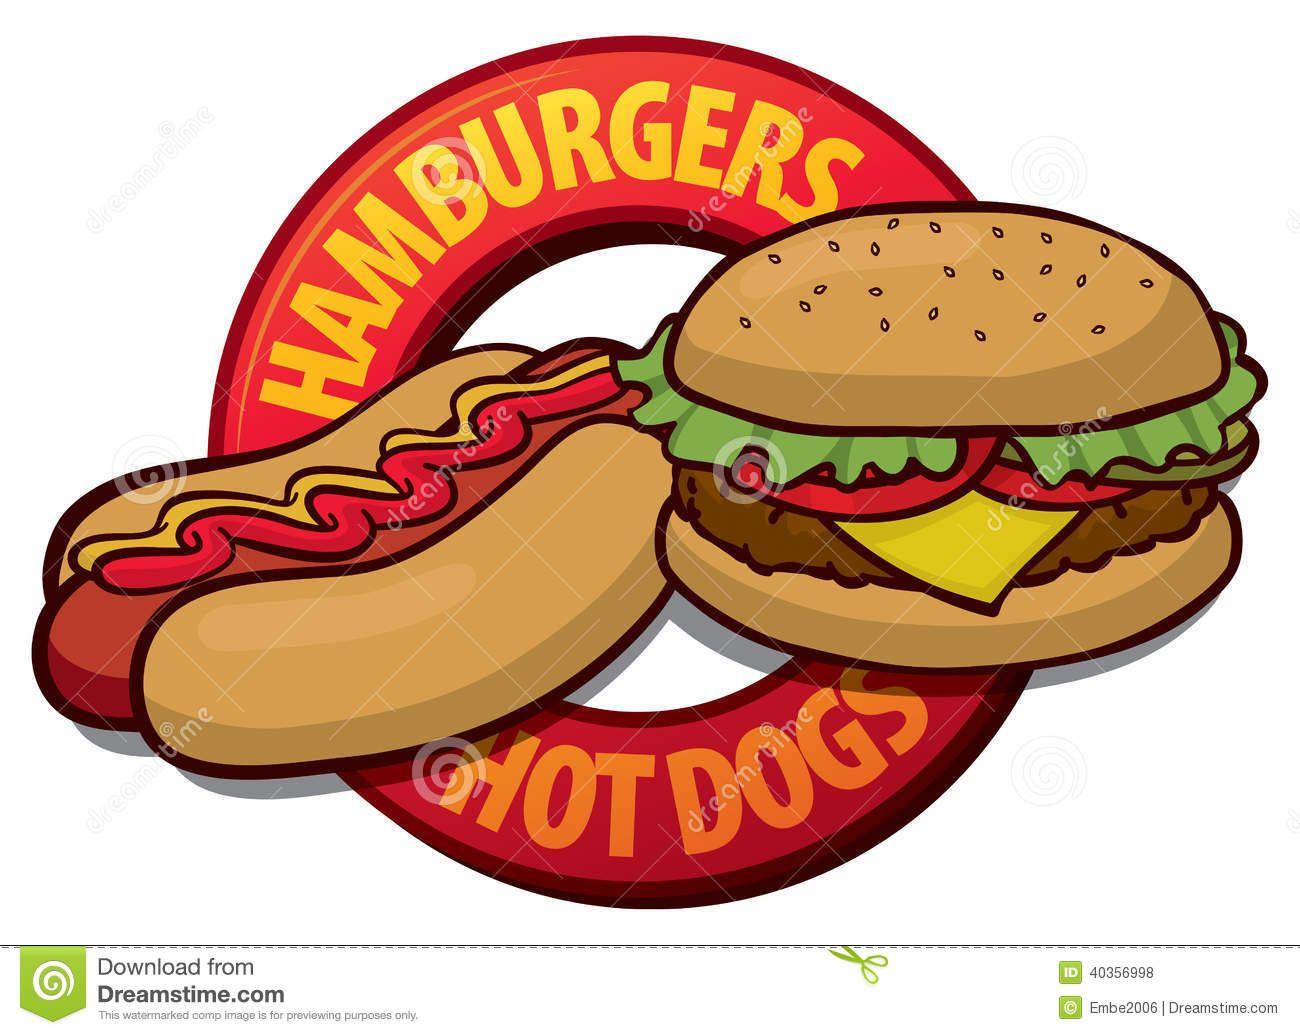 hamburger hot dog clip art open studios pinterest hamburgers and clip art. Black Bedroom Furniture Sets. Home Design Ideas